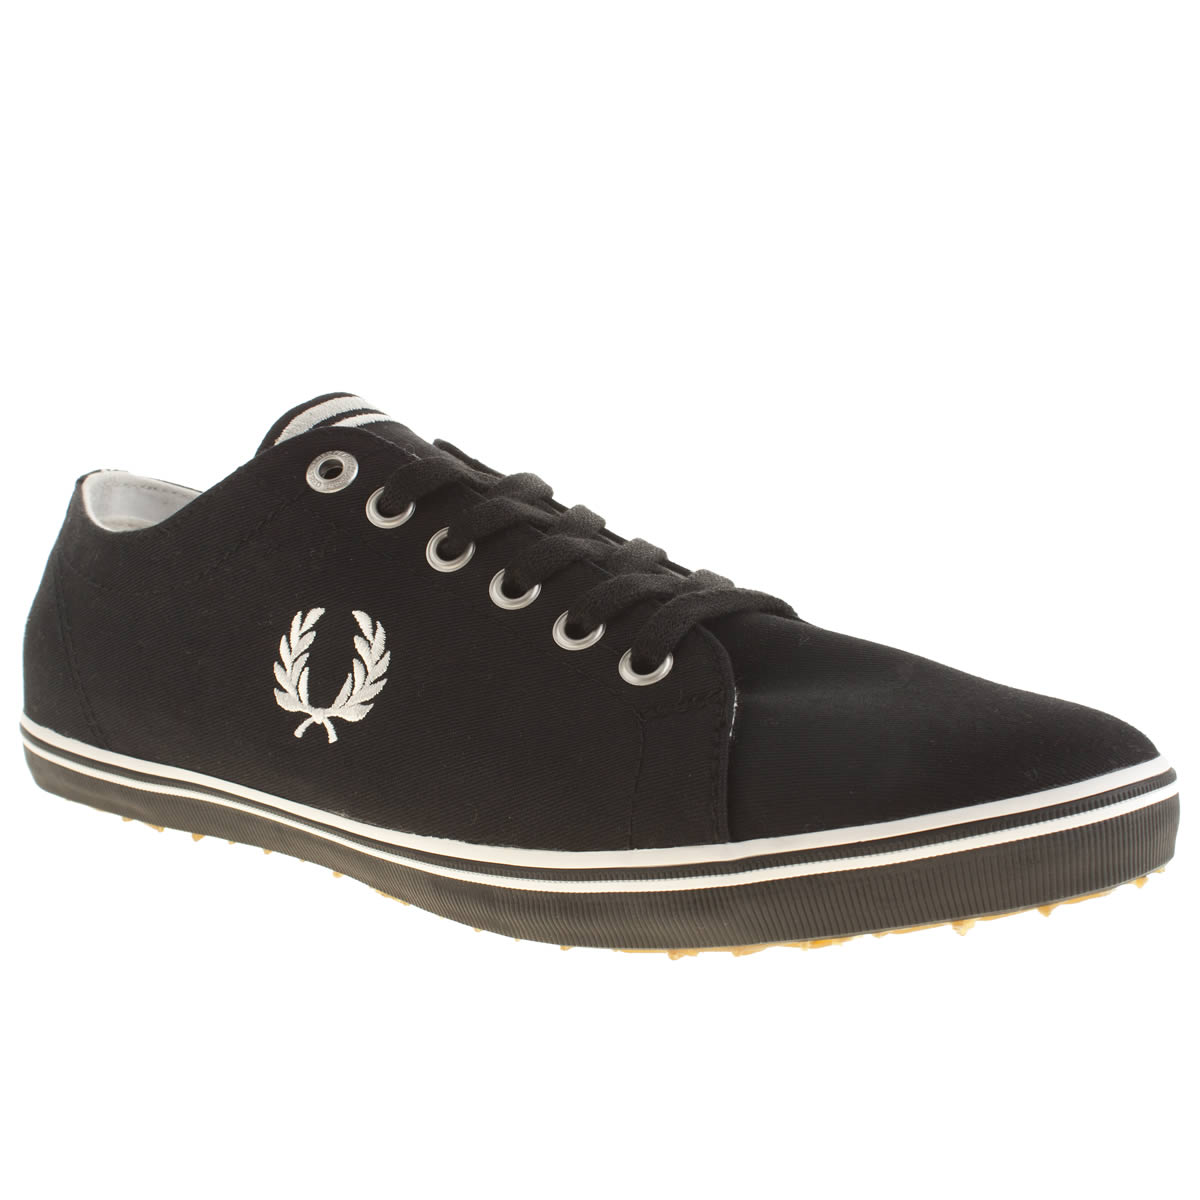 Converse Womens White Fabric Plimsolls Trainers